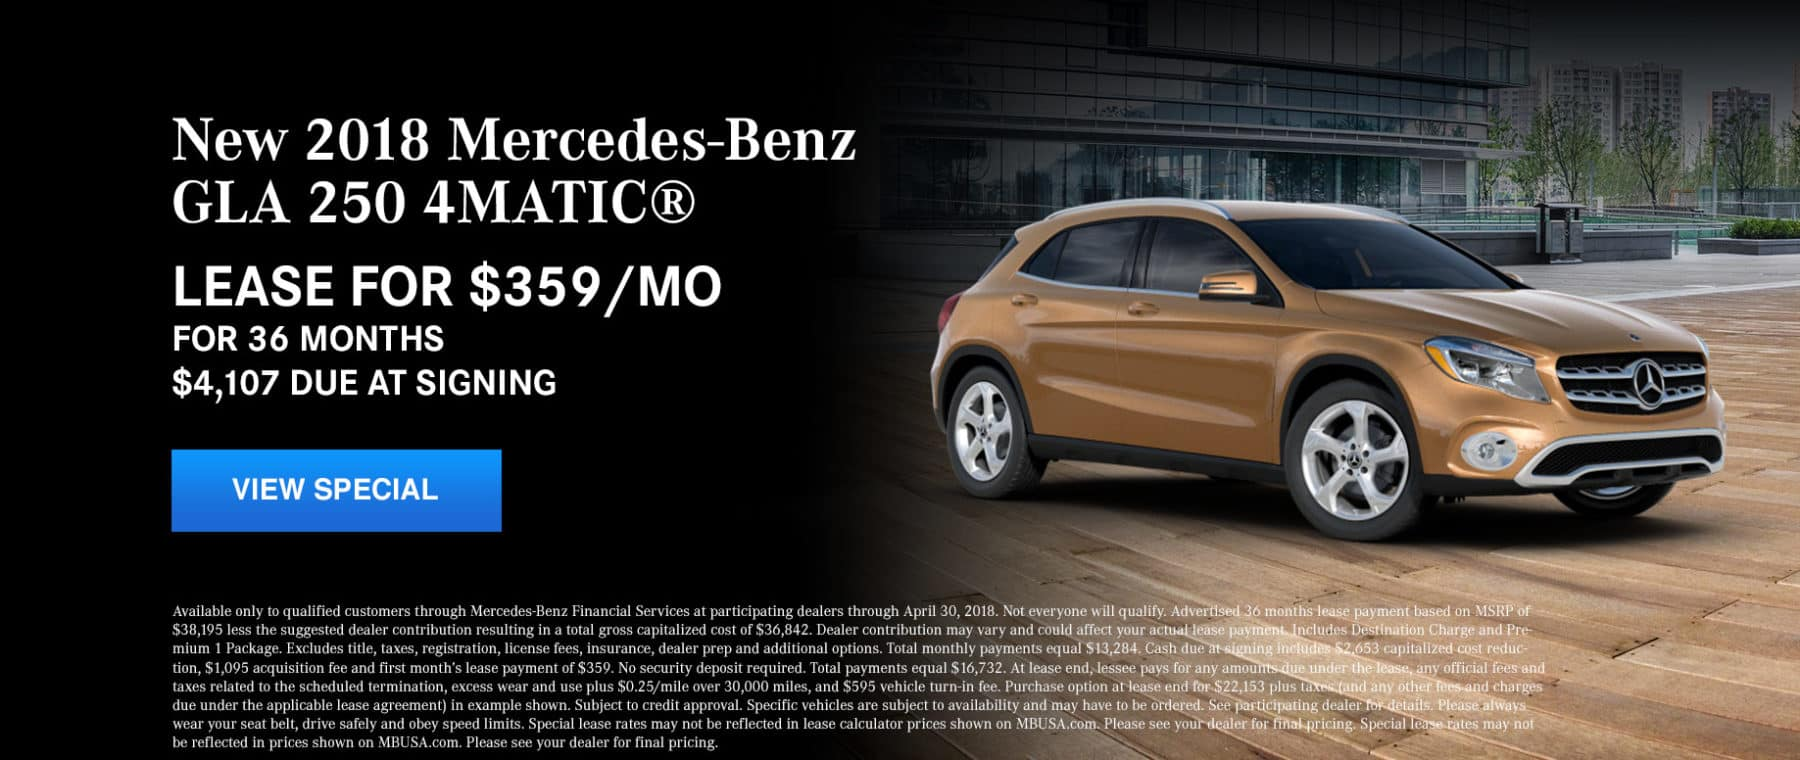 Mercedes benz of wappingers falls ny mercedes benz for Mercedes benz wichita falls